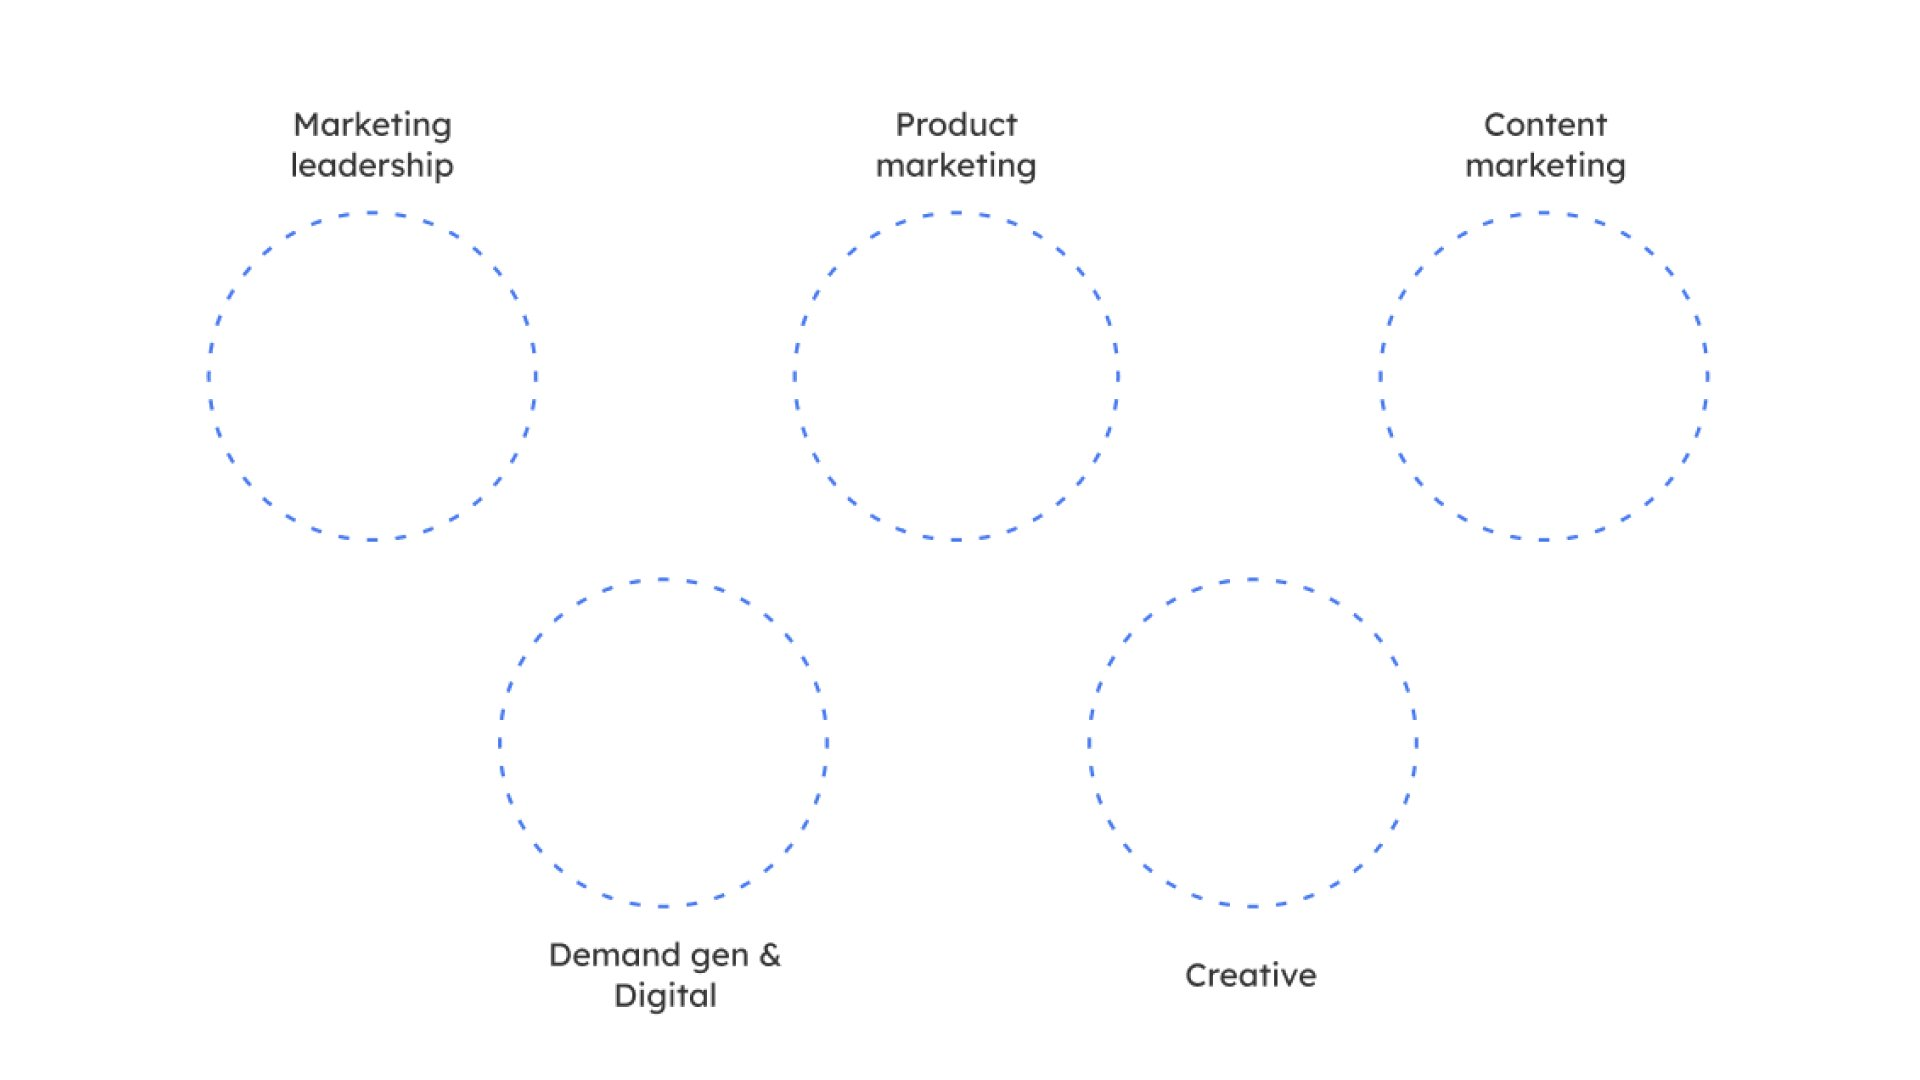 saas marketing team structure